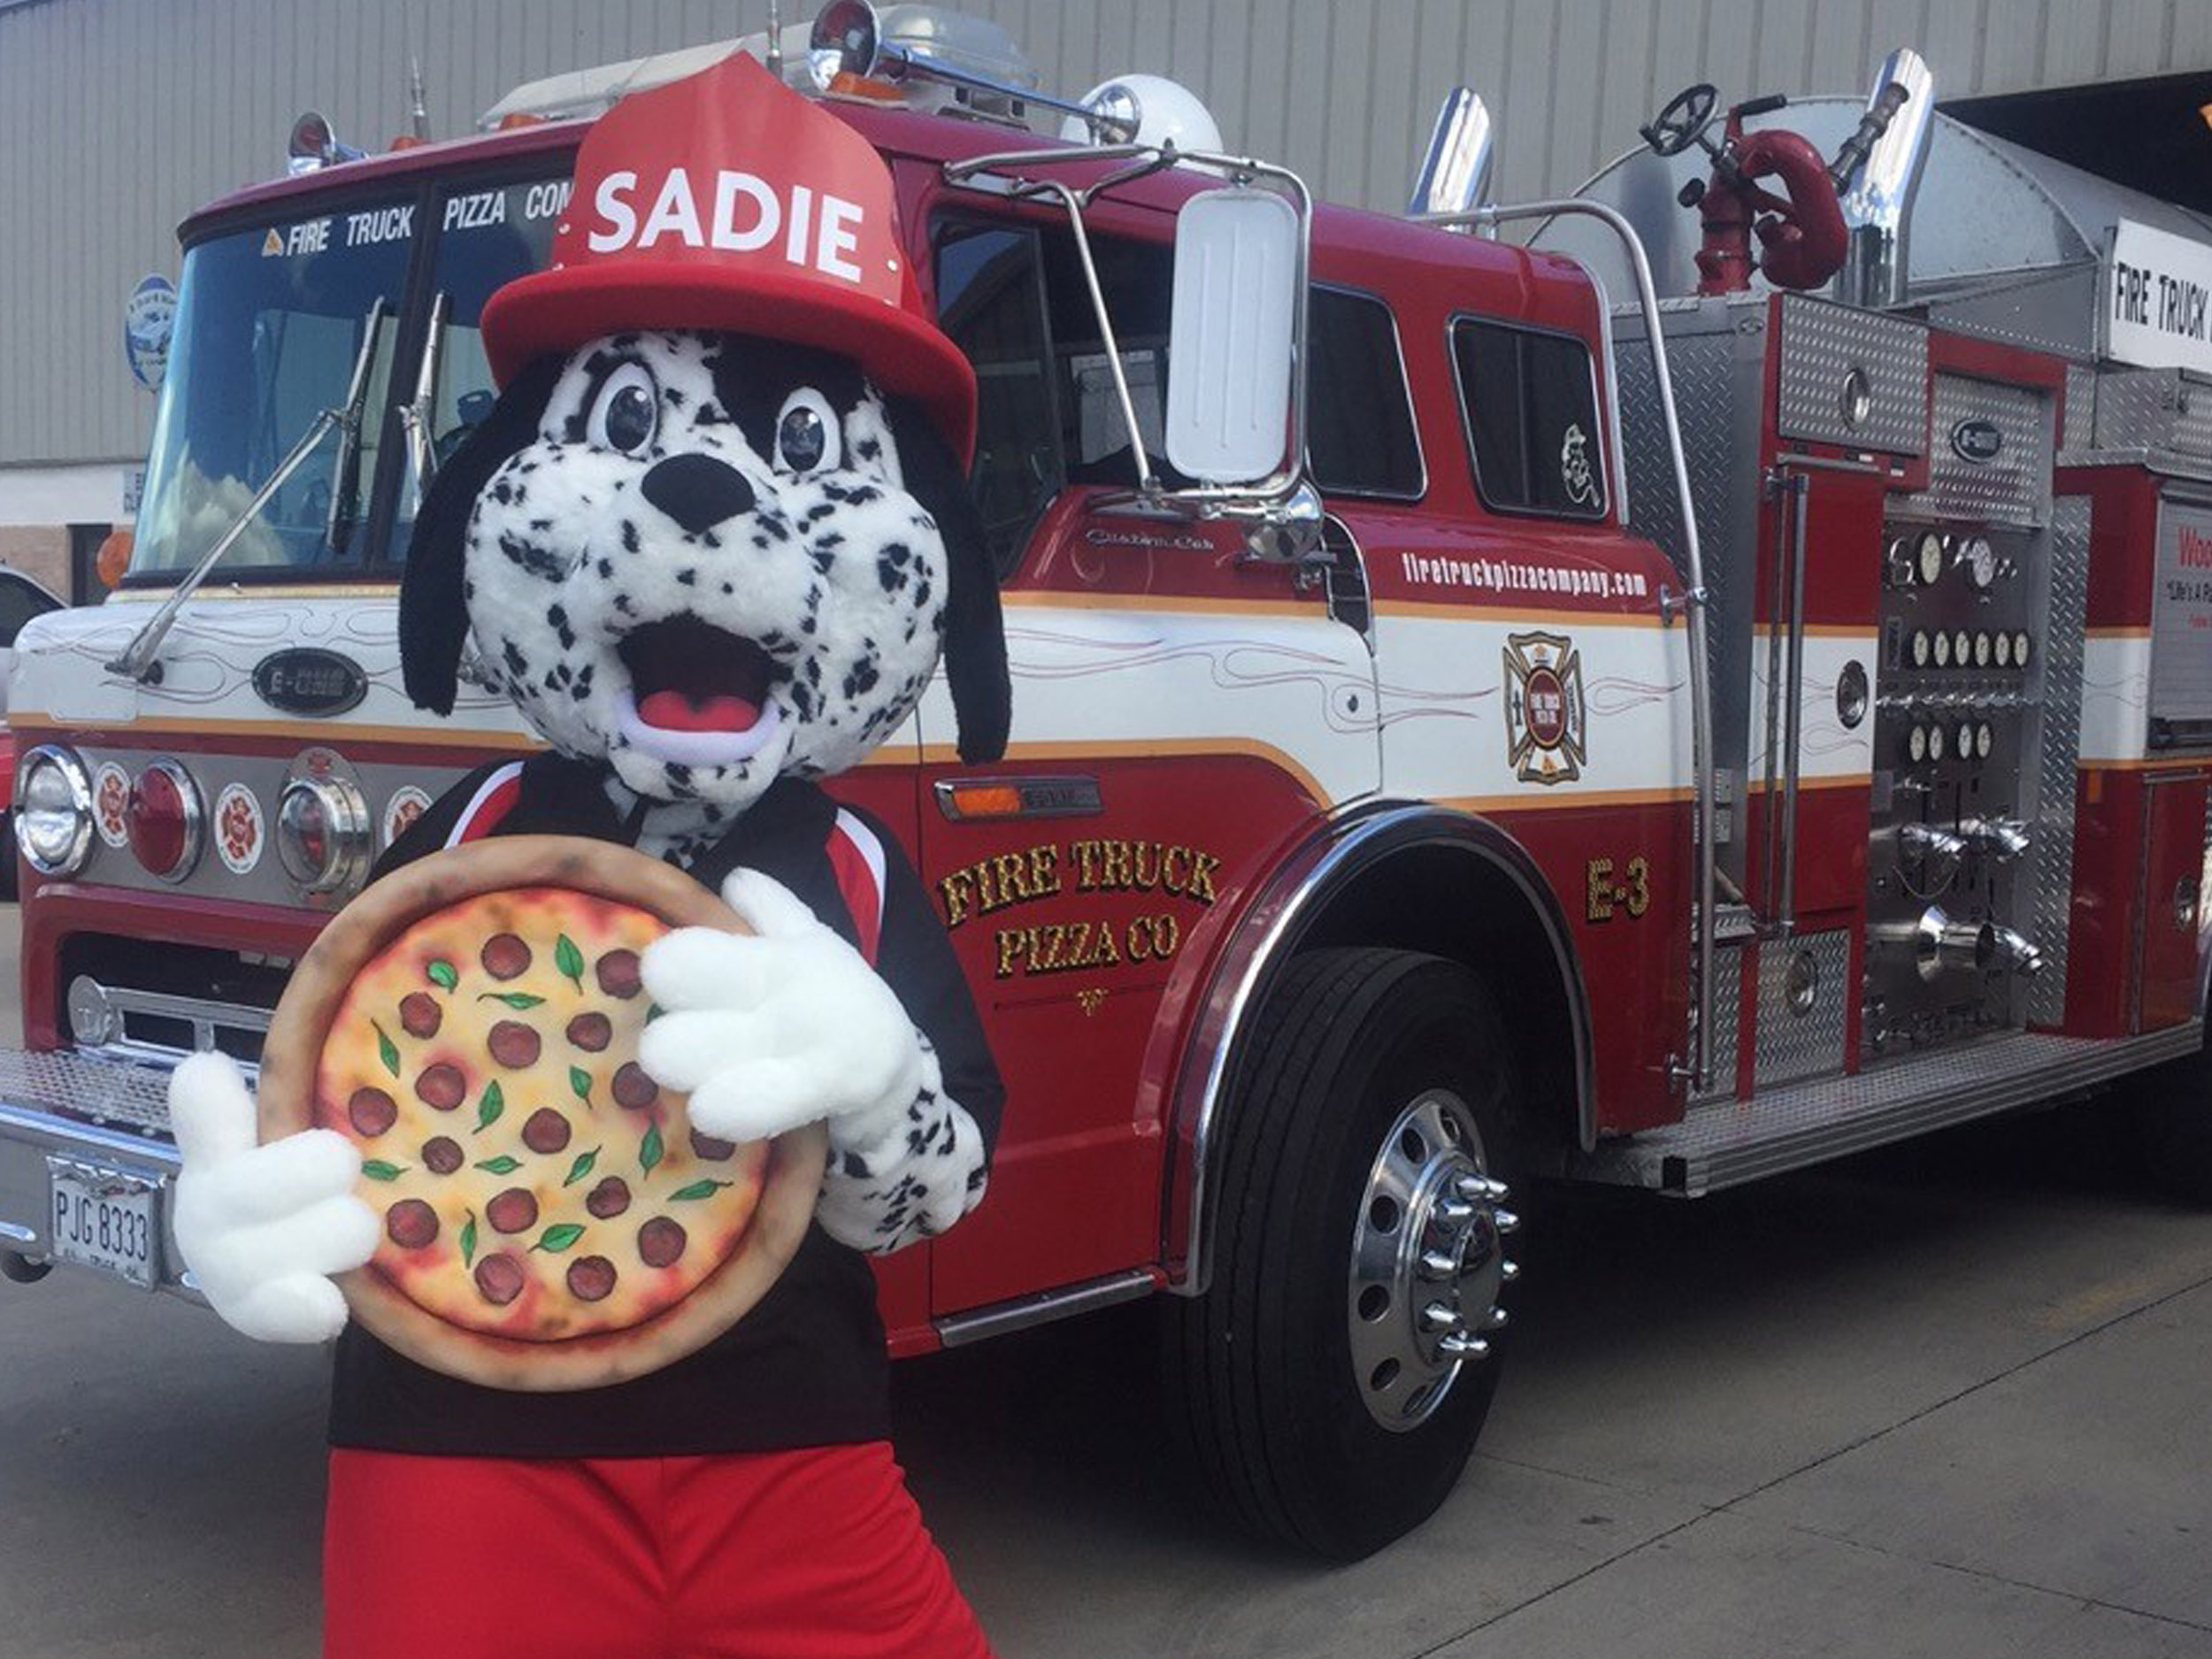 fire truck pizza web.jpg